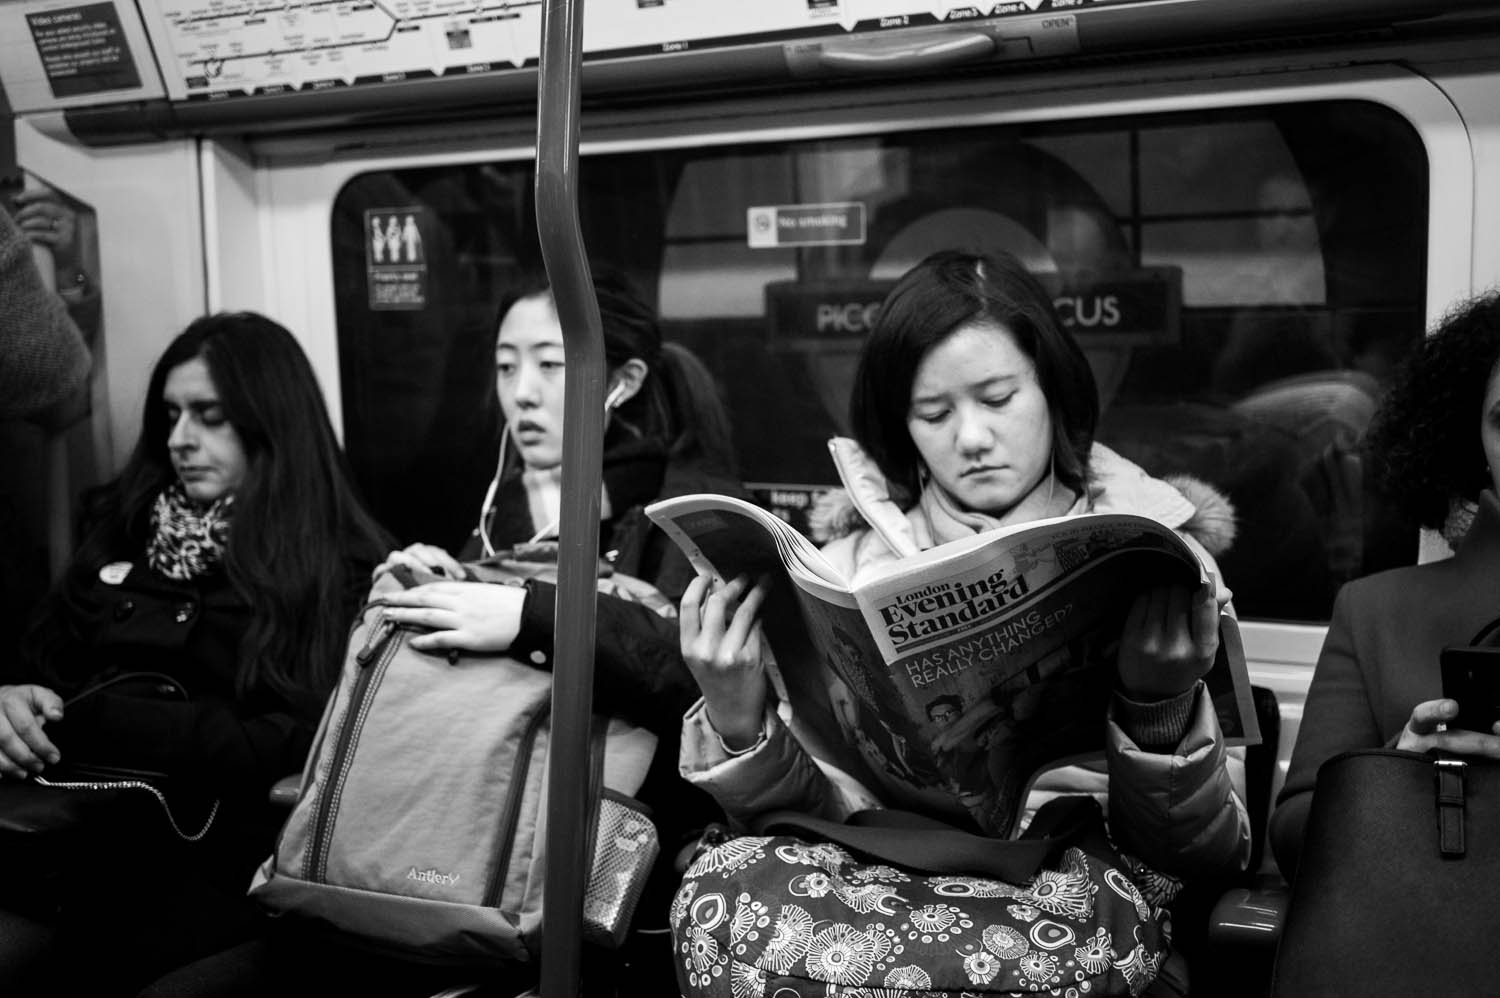 A woman reads the London Evening Standard on the London tube.